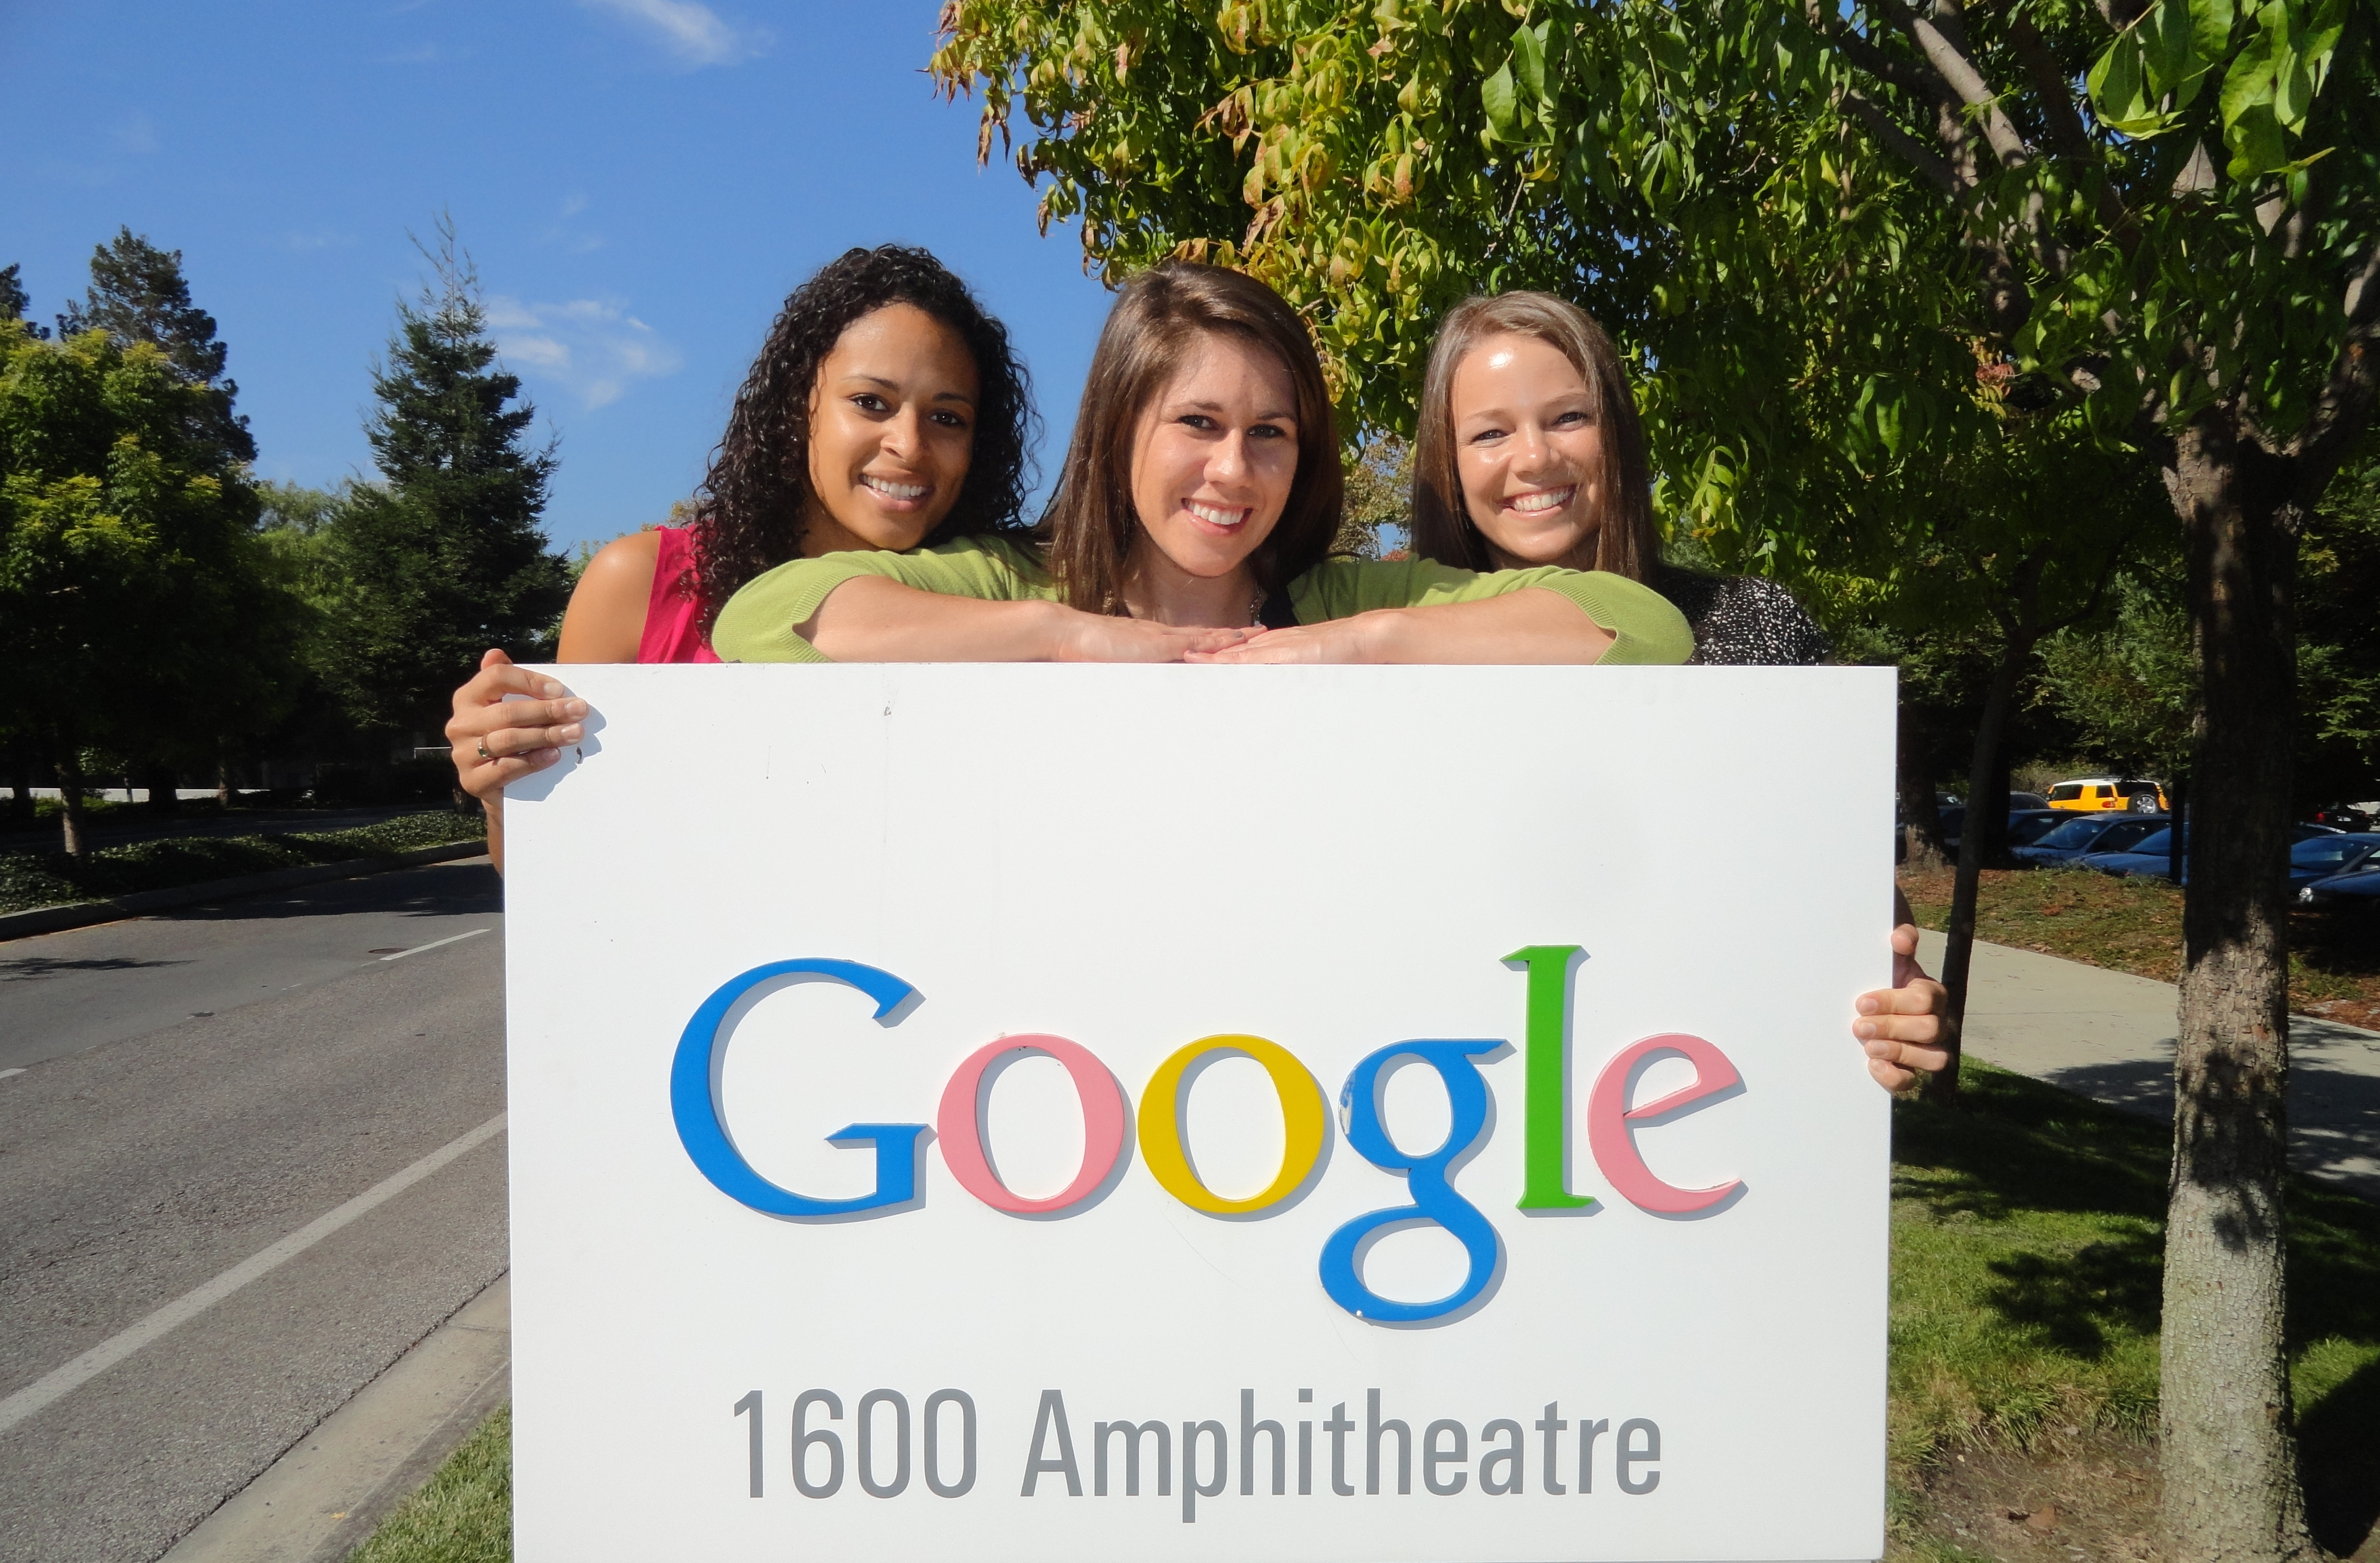 Visiting Google's official location from Google Maps. Google Mountain View, 1600 Amphitheatre Parkway, Mountain View, CA 94043